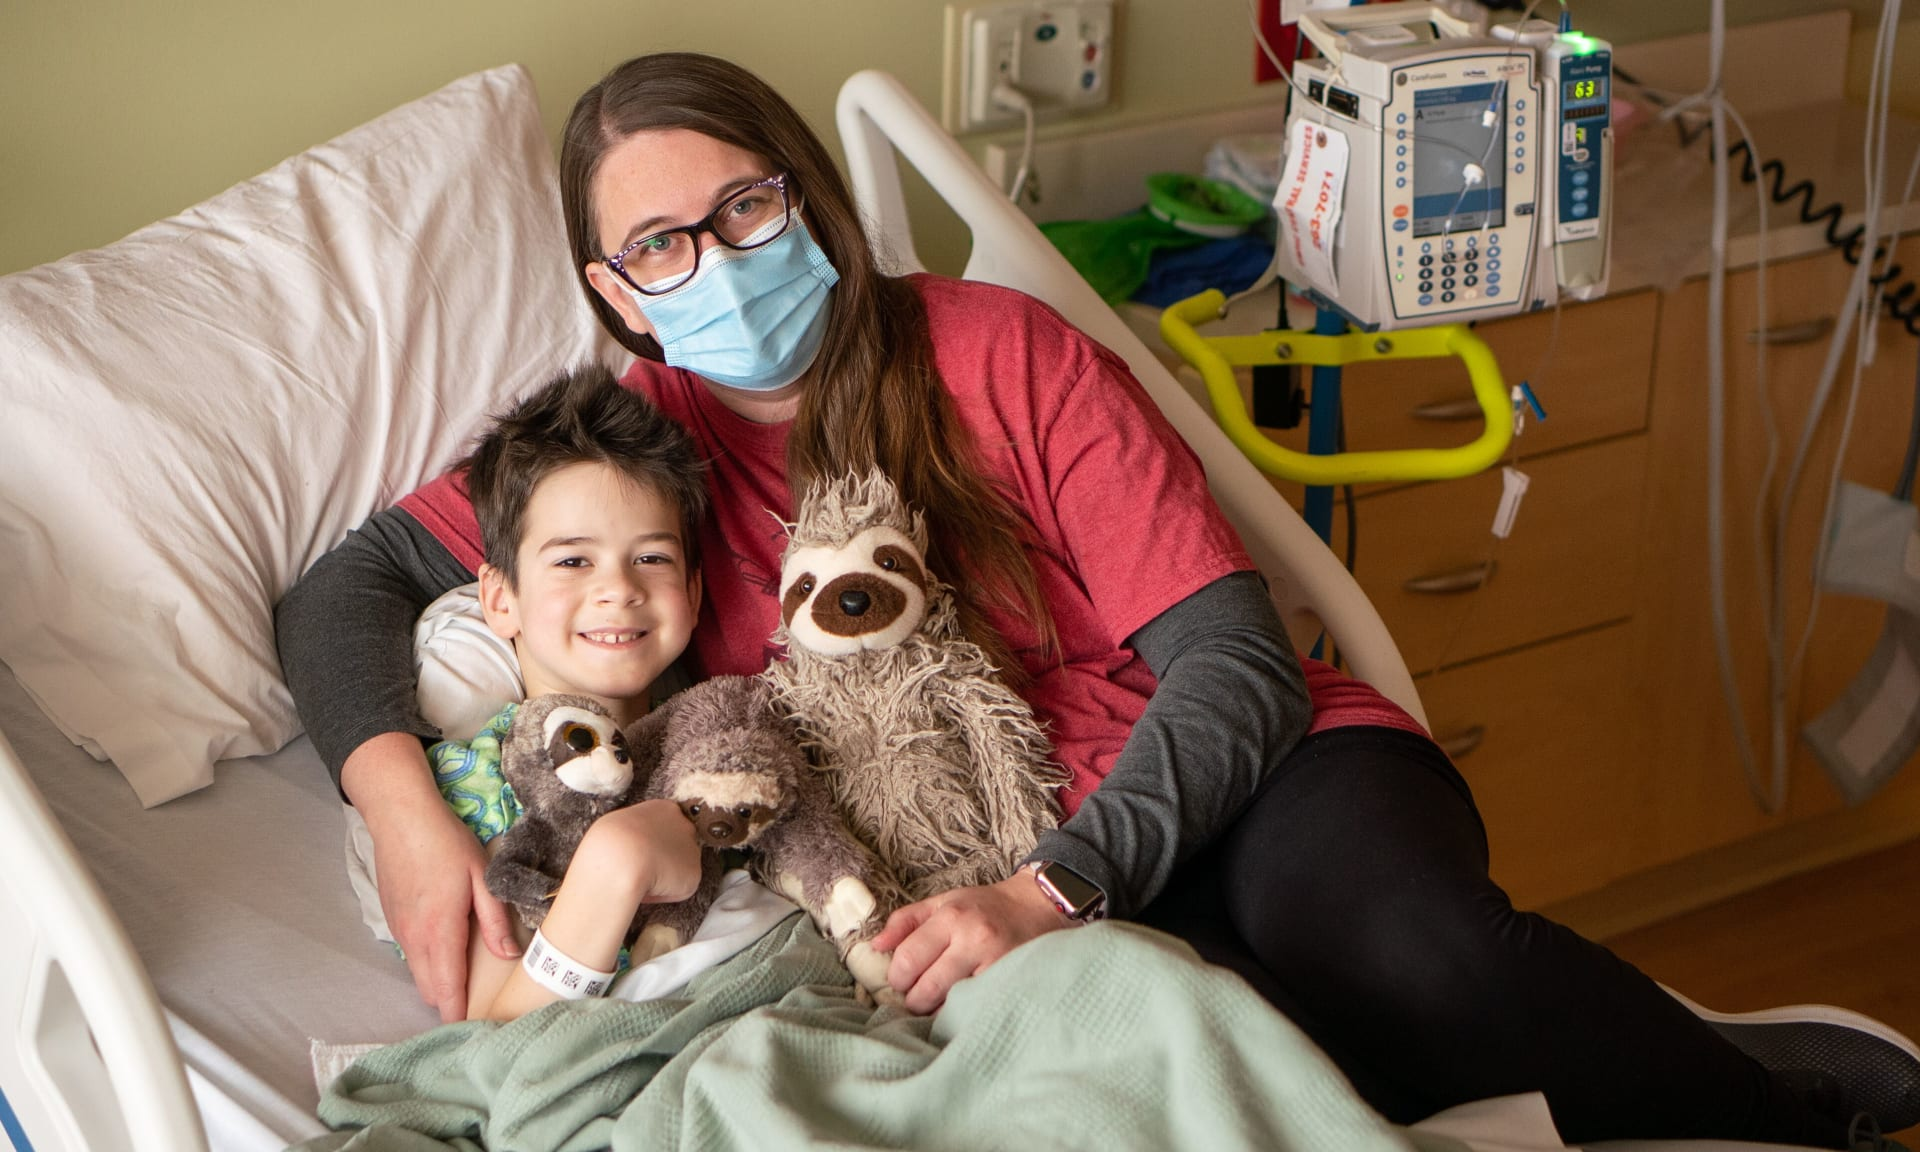 Woman and child in hospital bed with stuffed animals